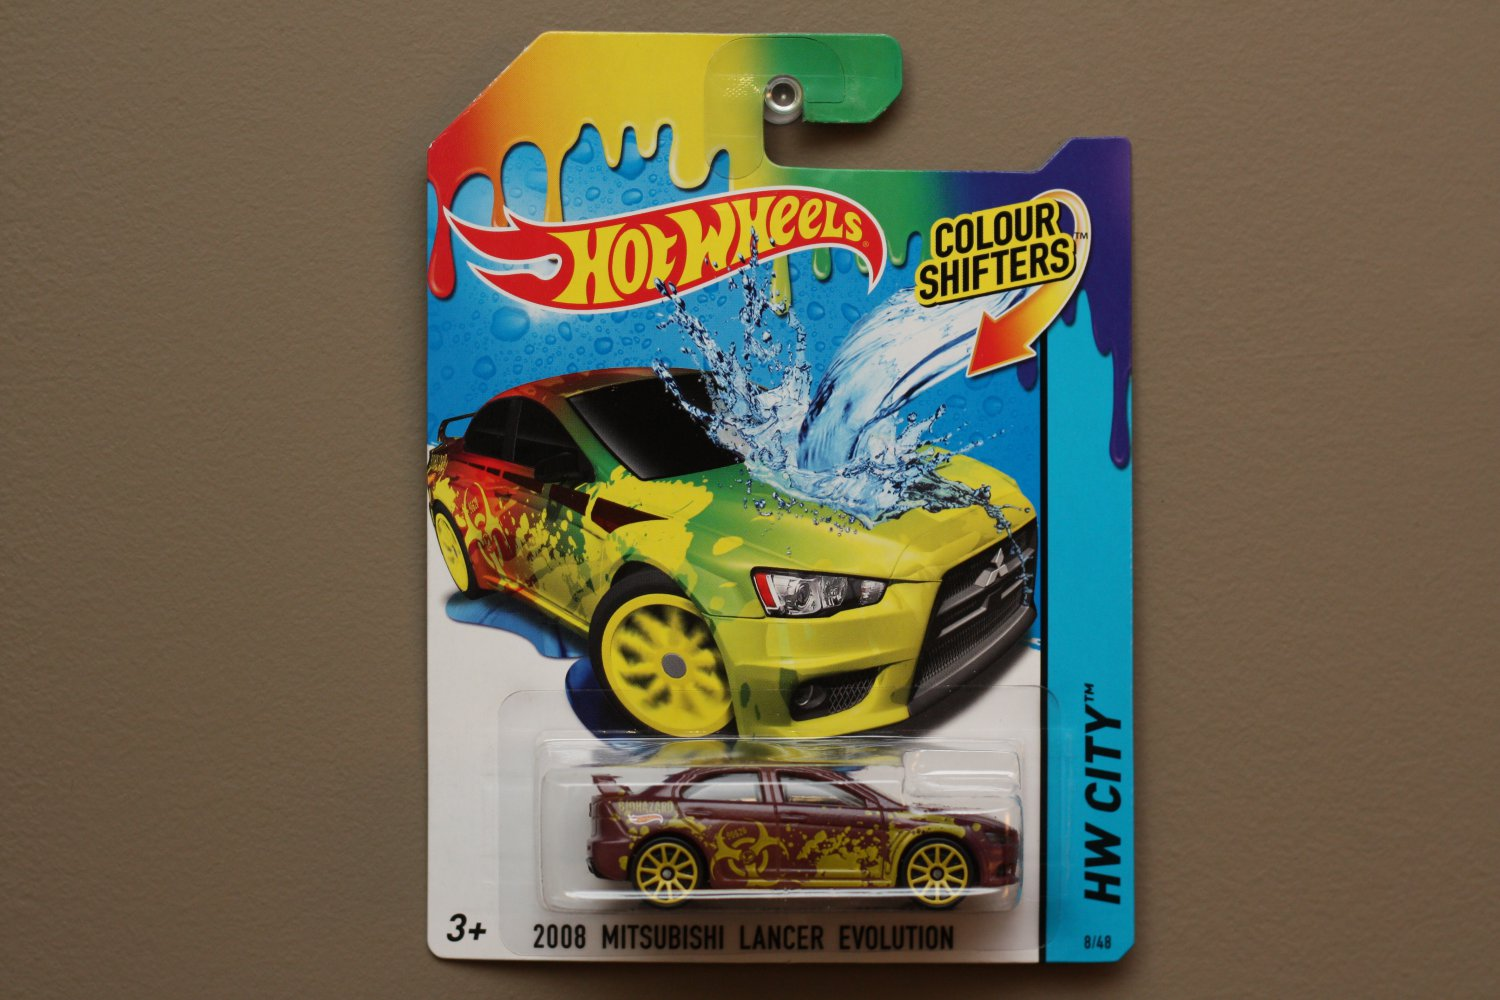 hot wheels 2015 color shifters 2008 mitsubishi lancer. Black Bedroom Furniture Sets. Home Design Ideas